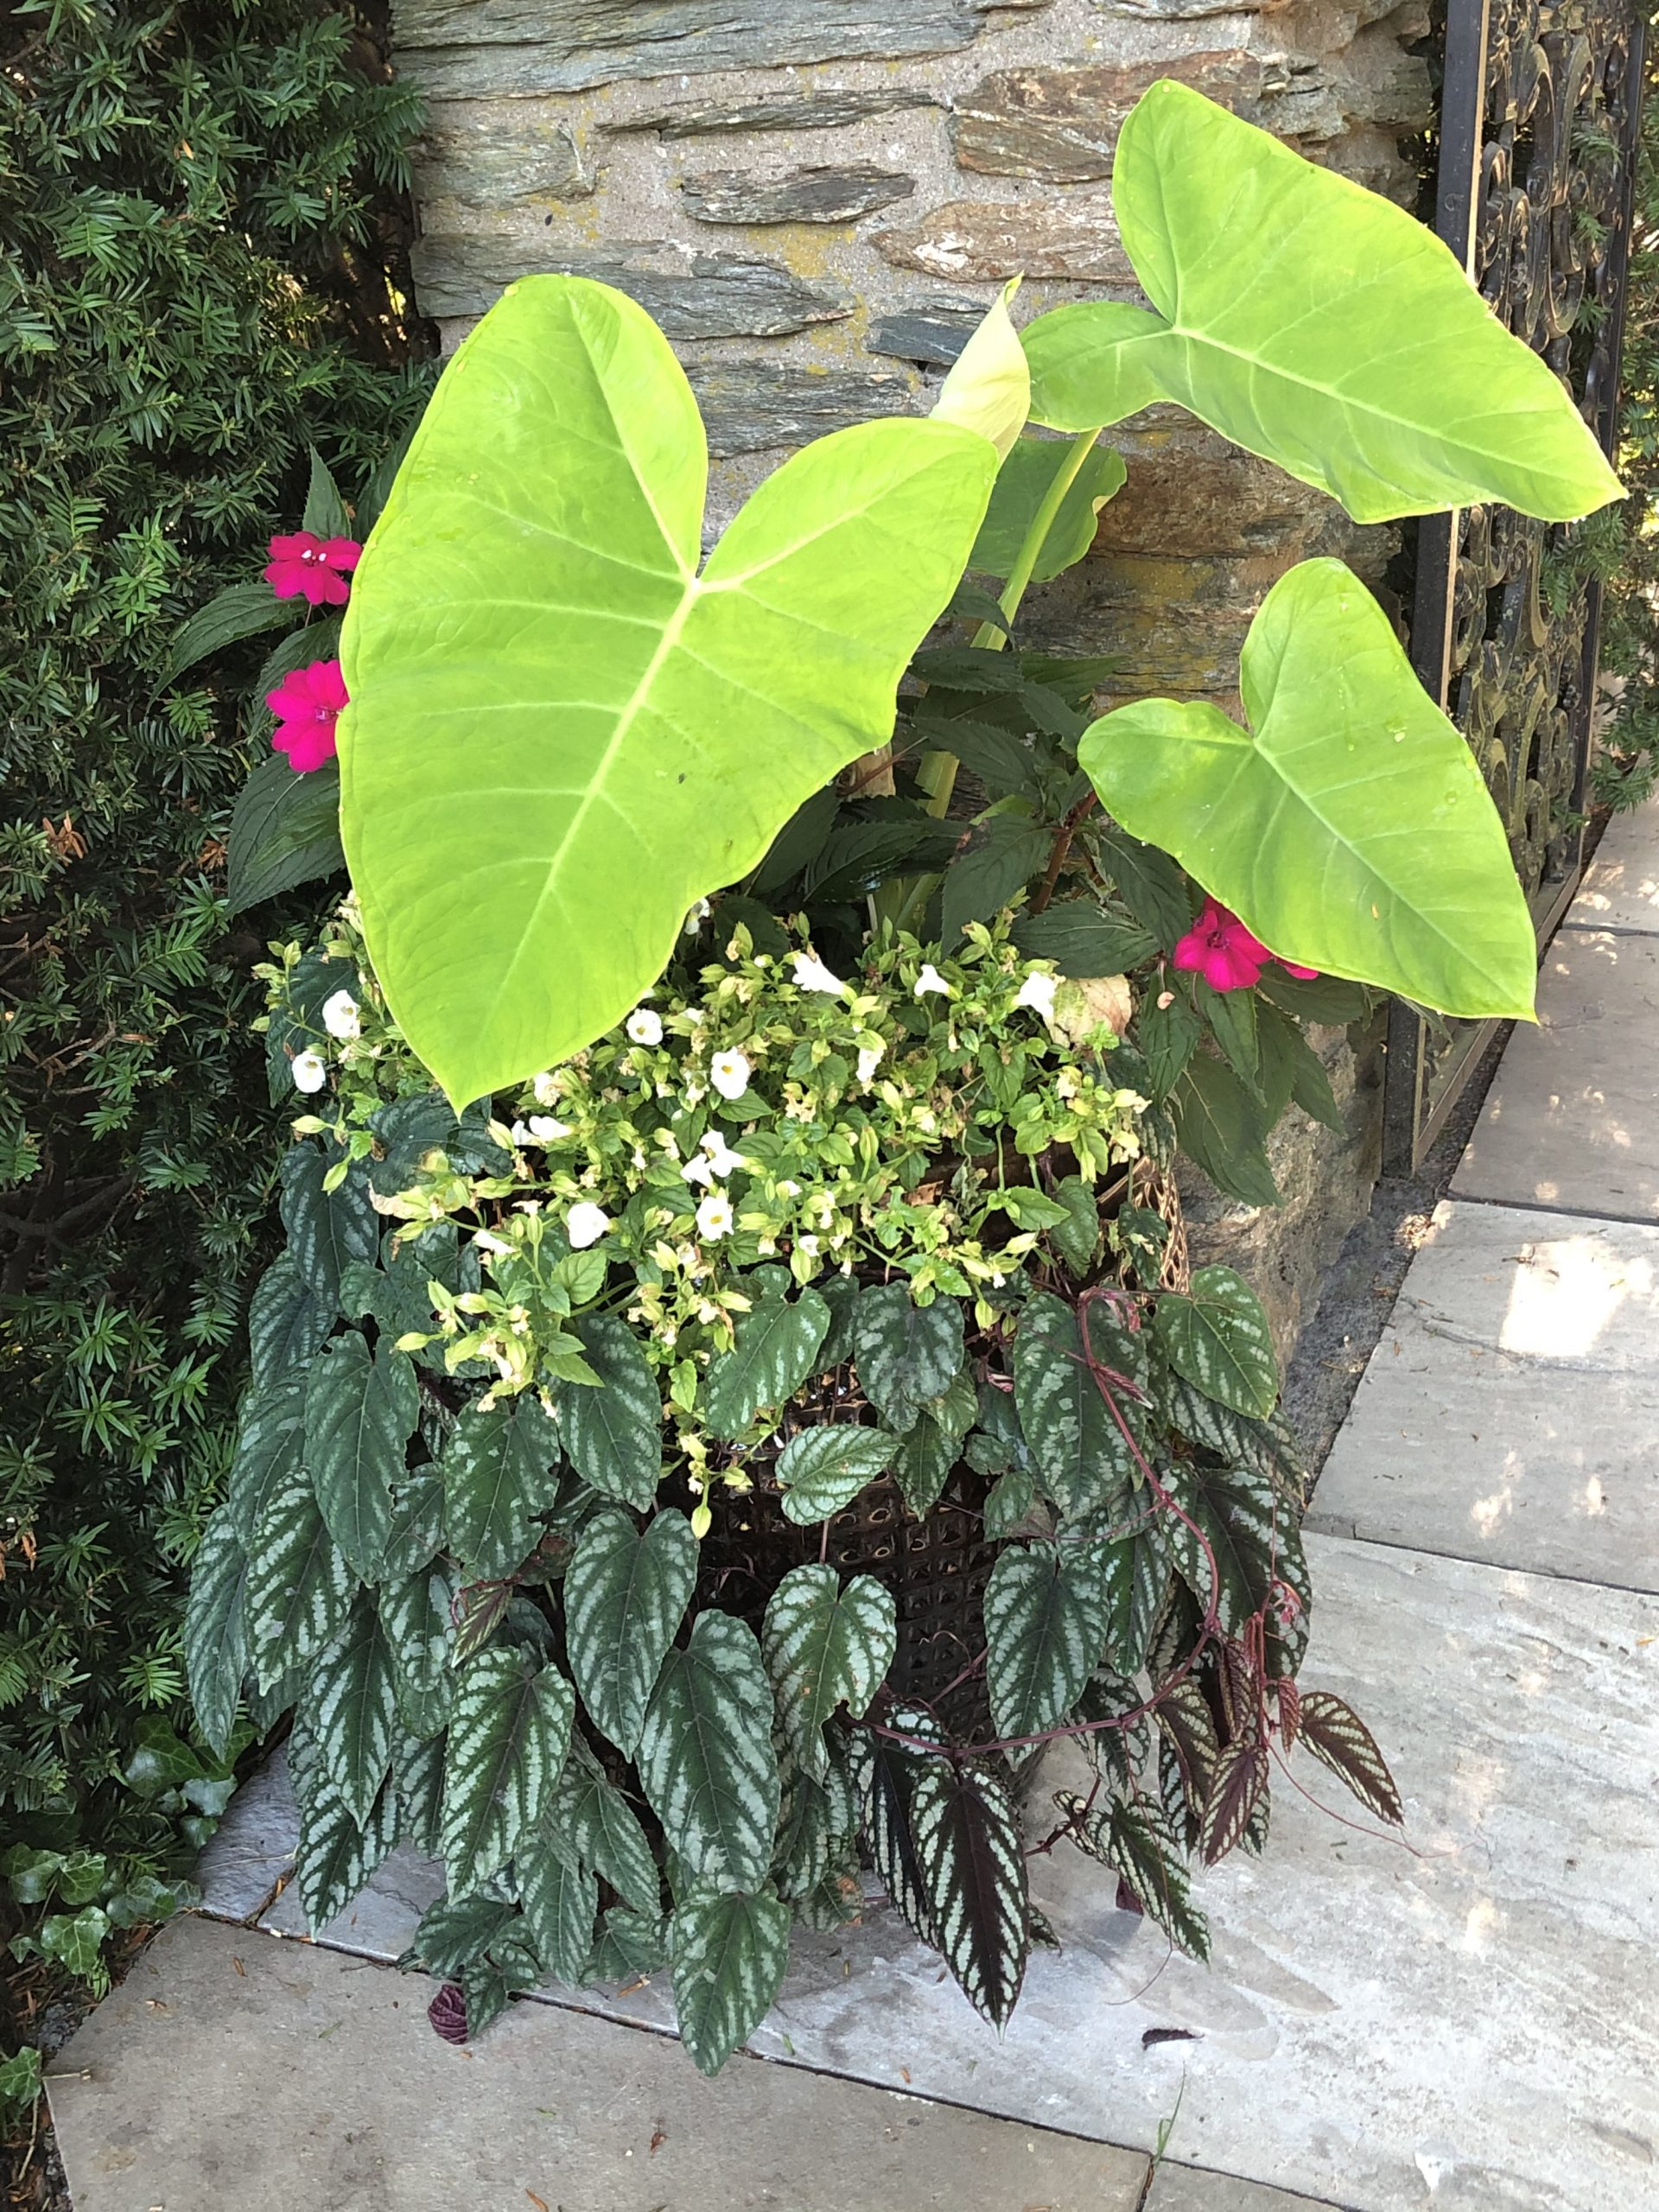 Lime Zinger Elephant Ears and Cissus vine